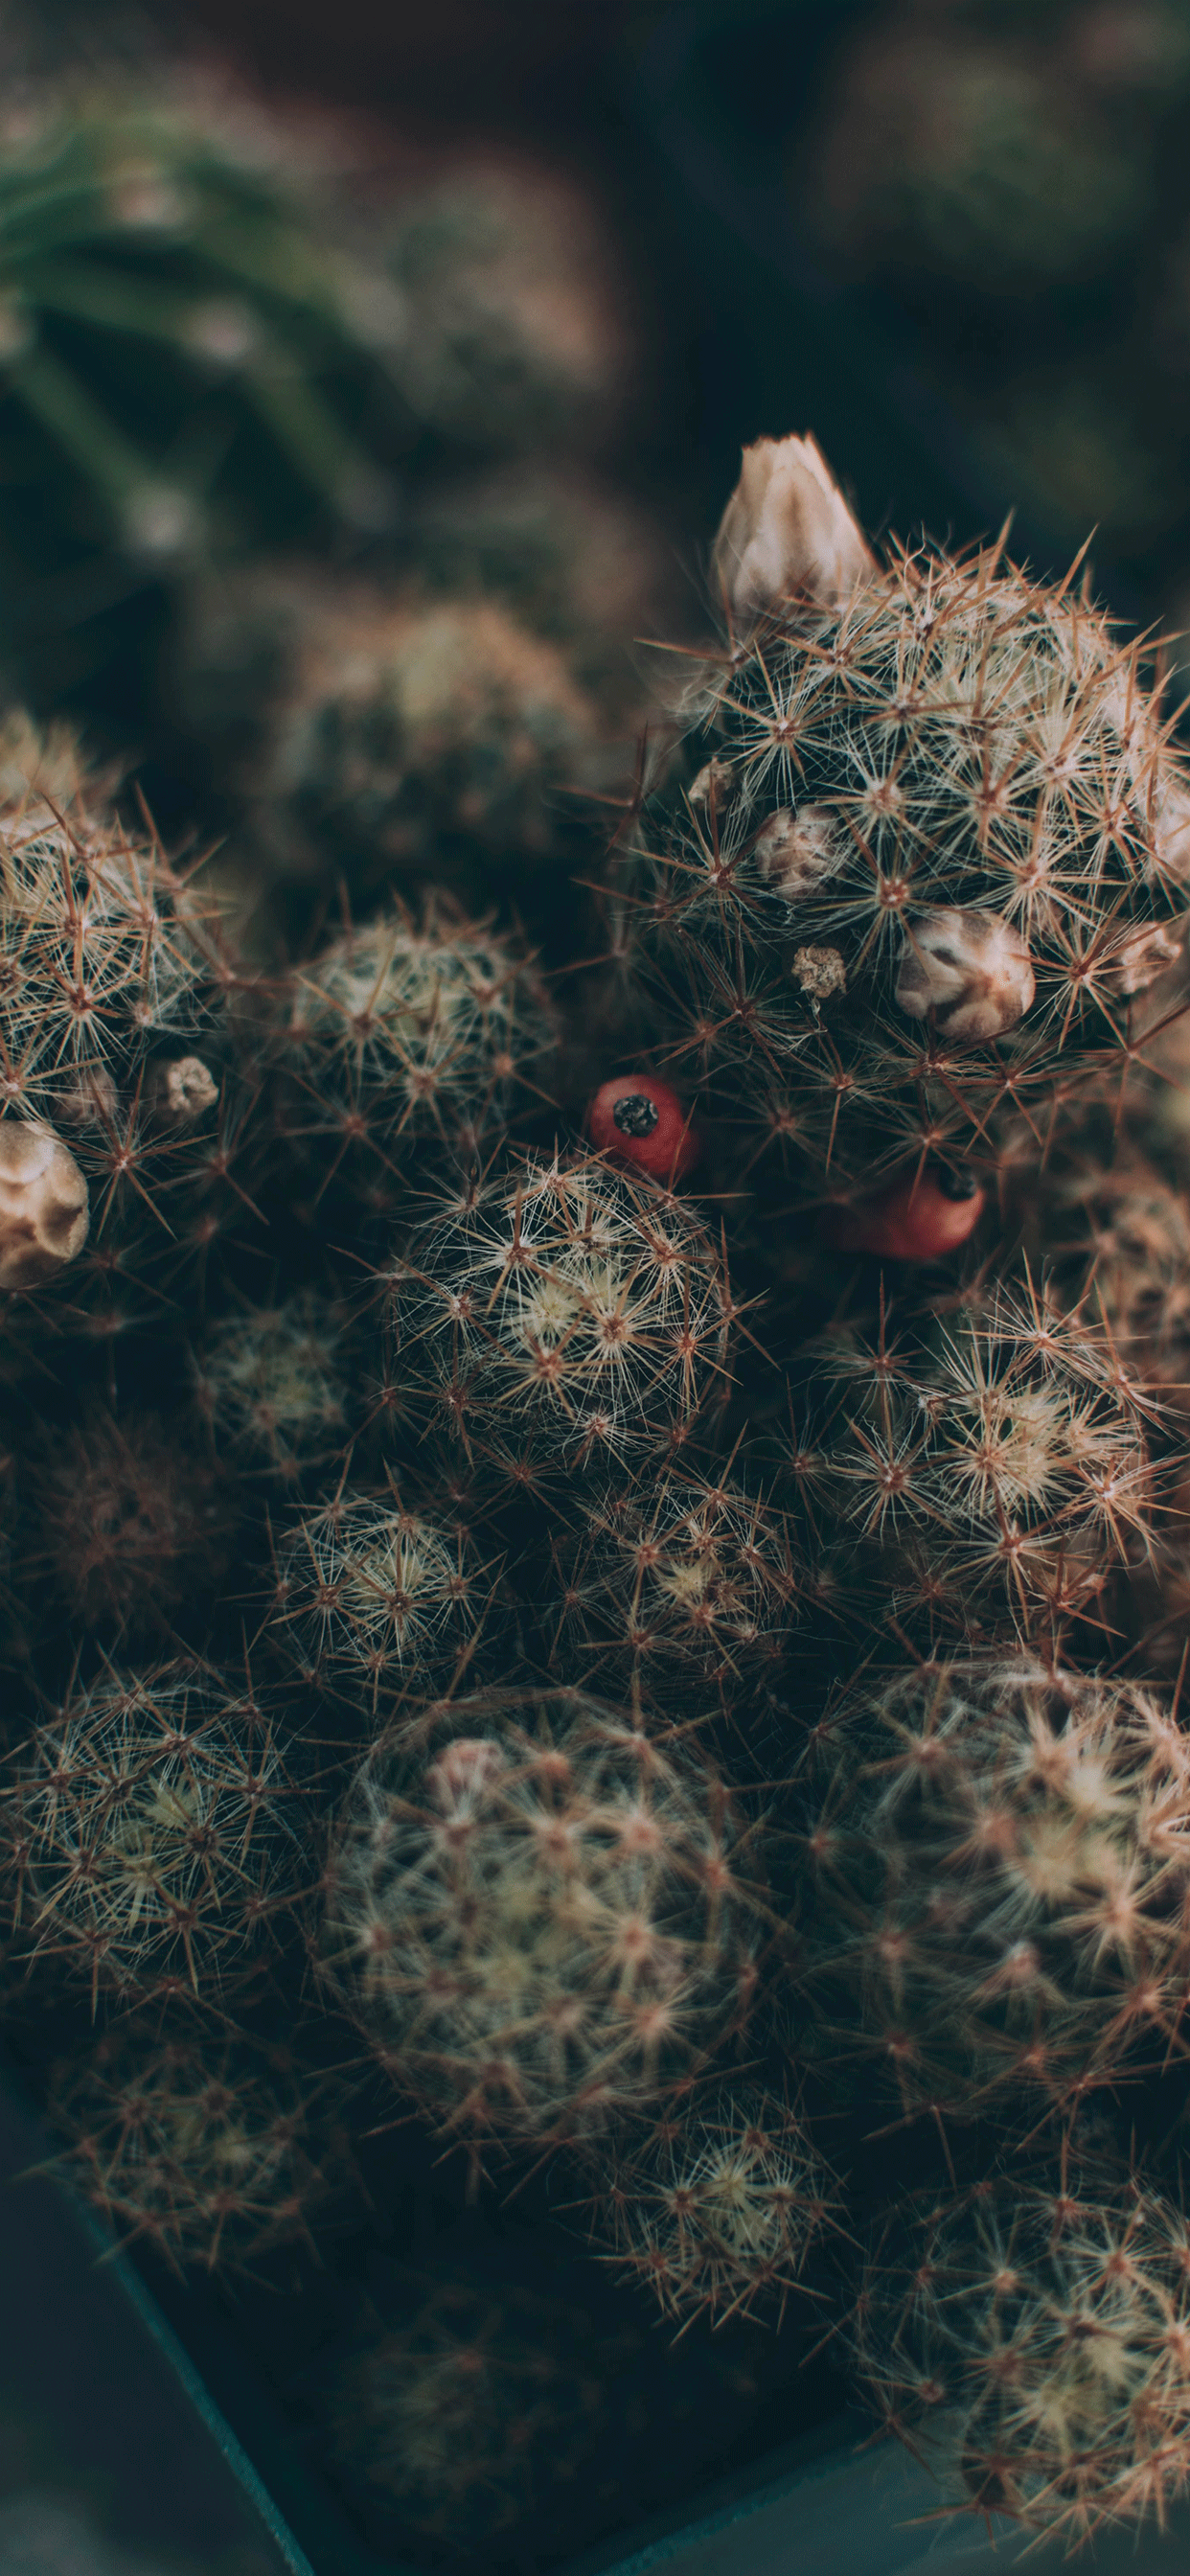 iPhone wallpapers cactus plant Fonds d'écran iPhone du 28/03/2019